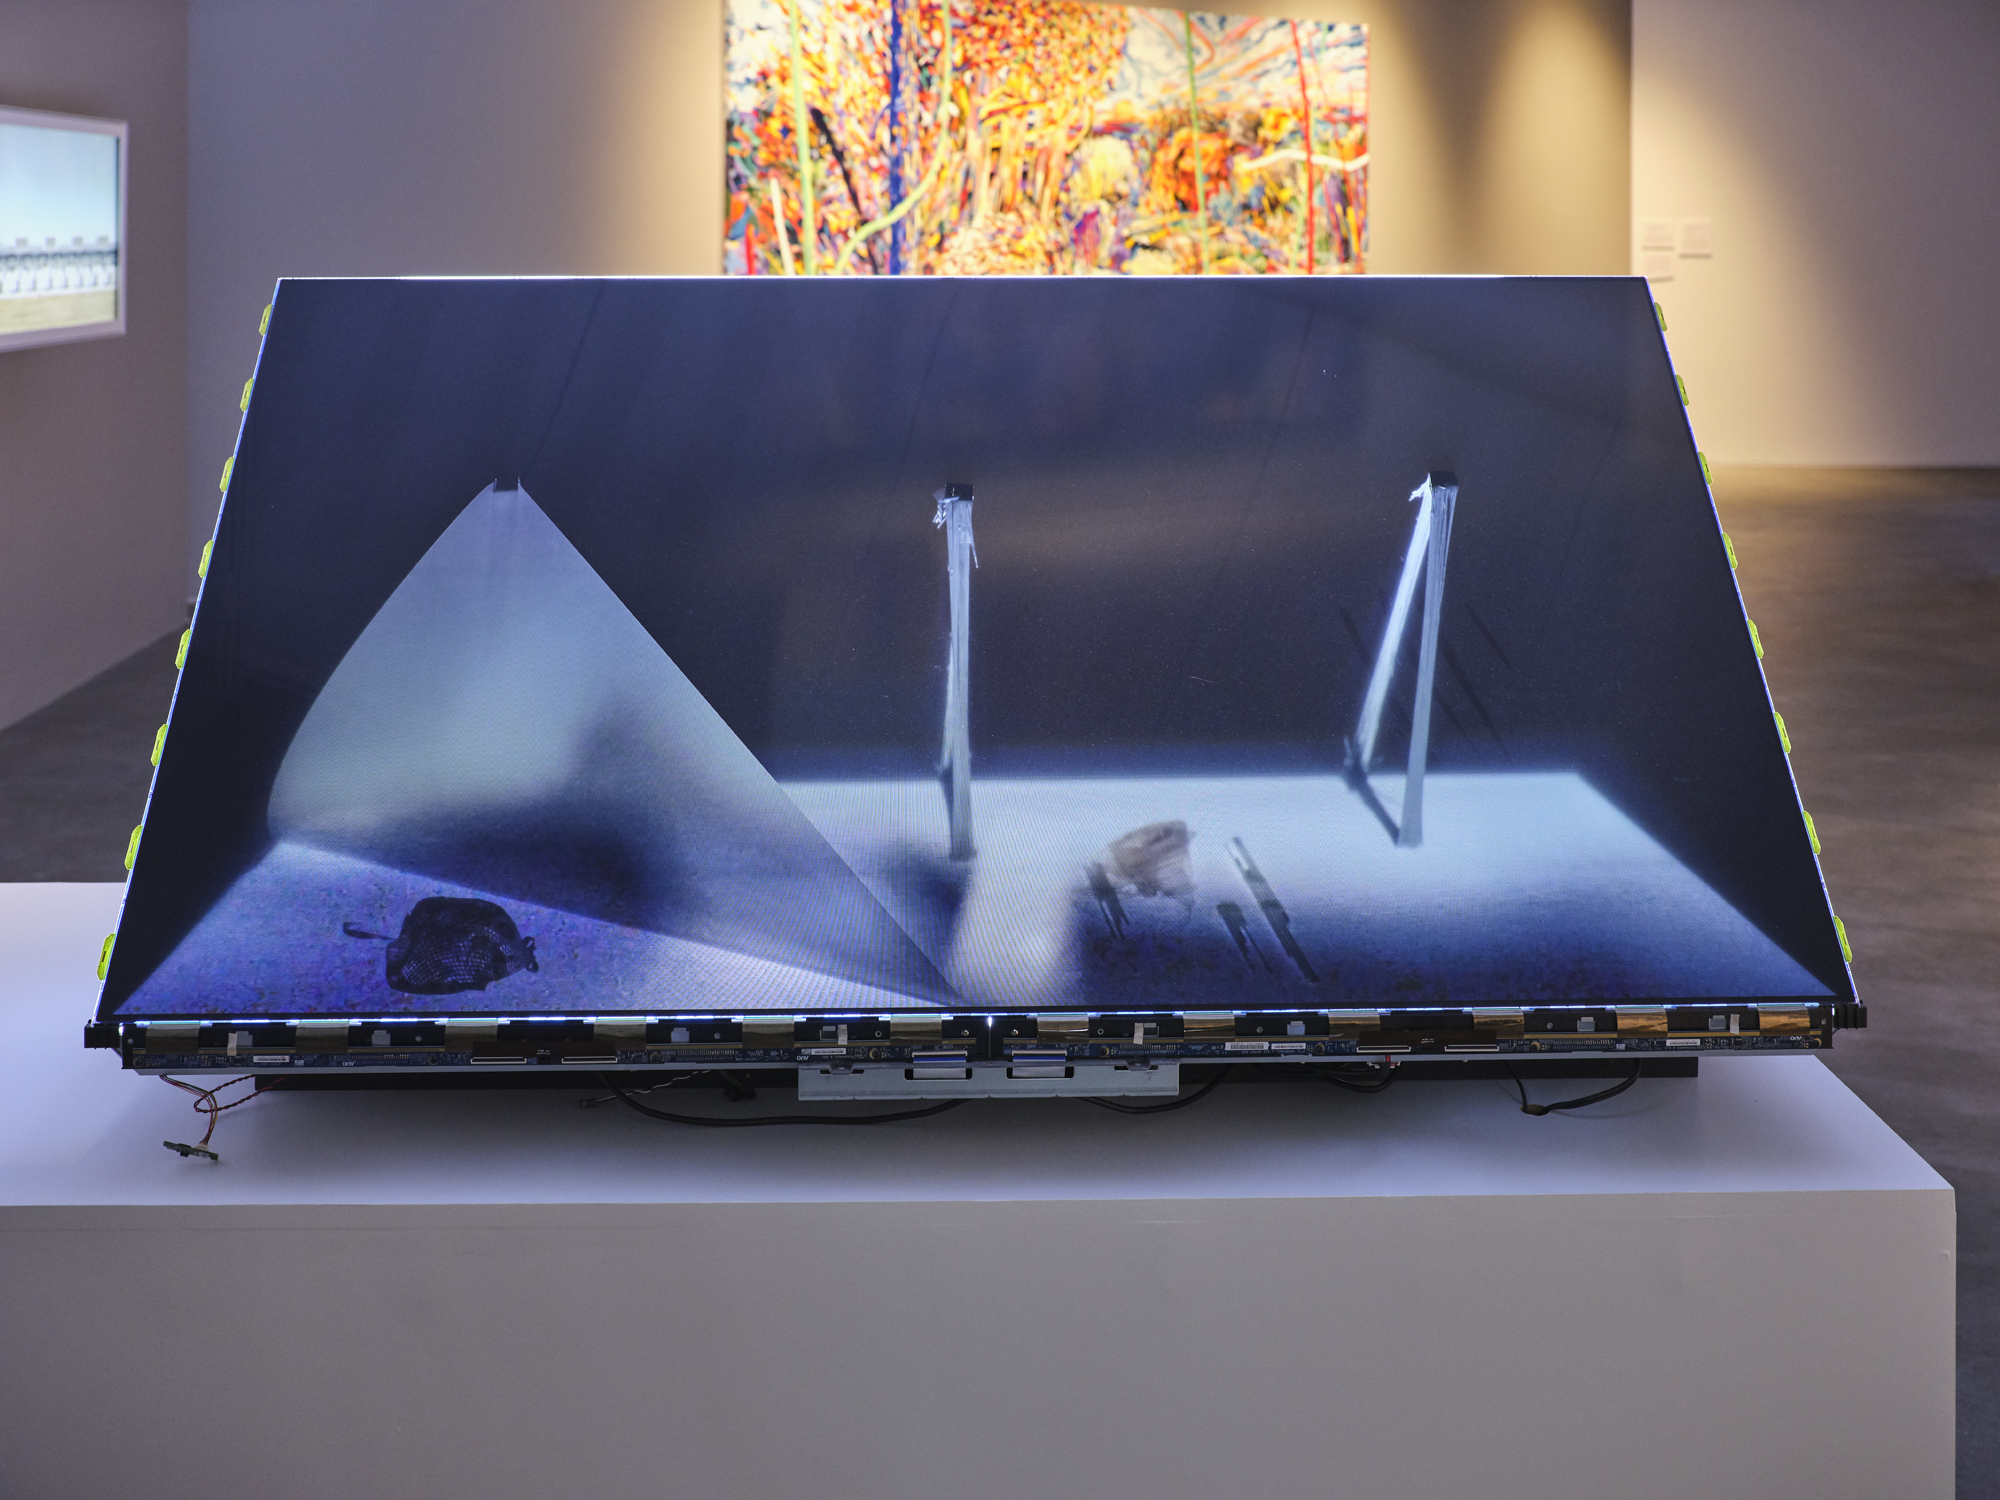 A photograph of an abstract art installation made from a deconstructed TV set